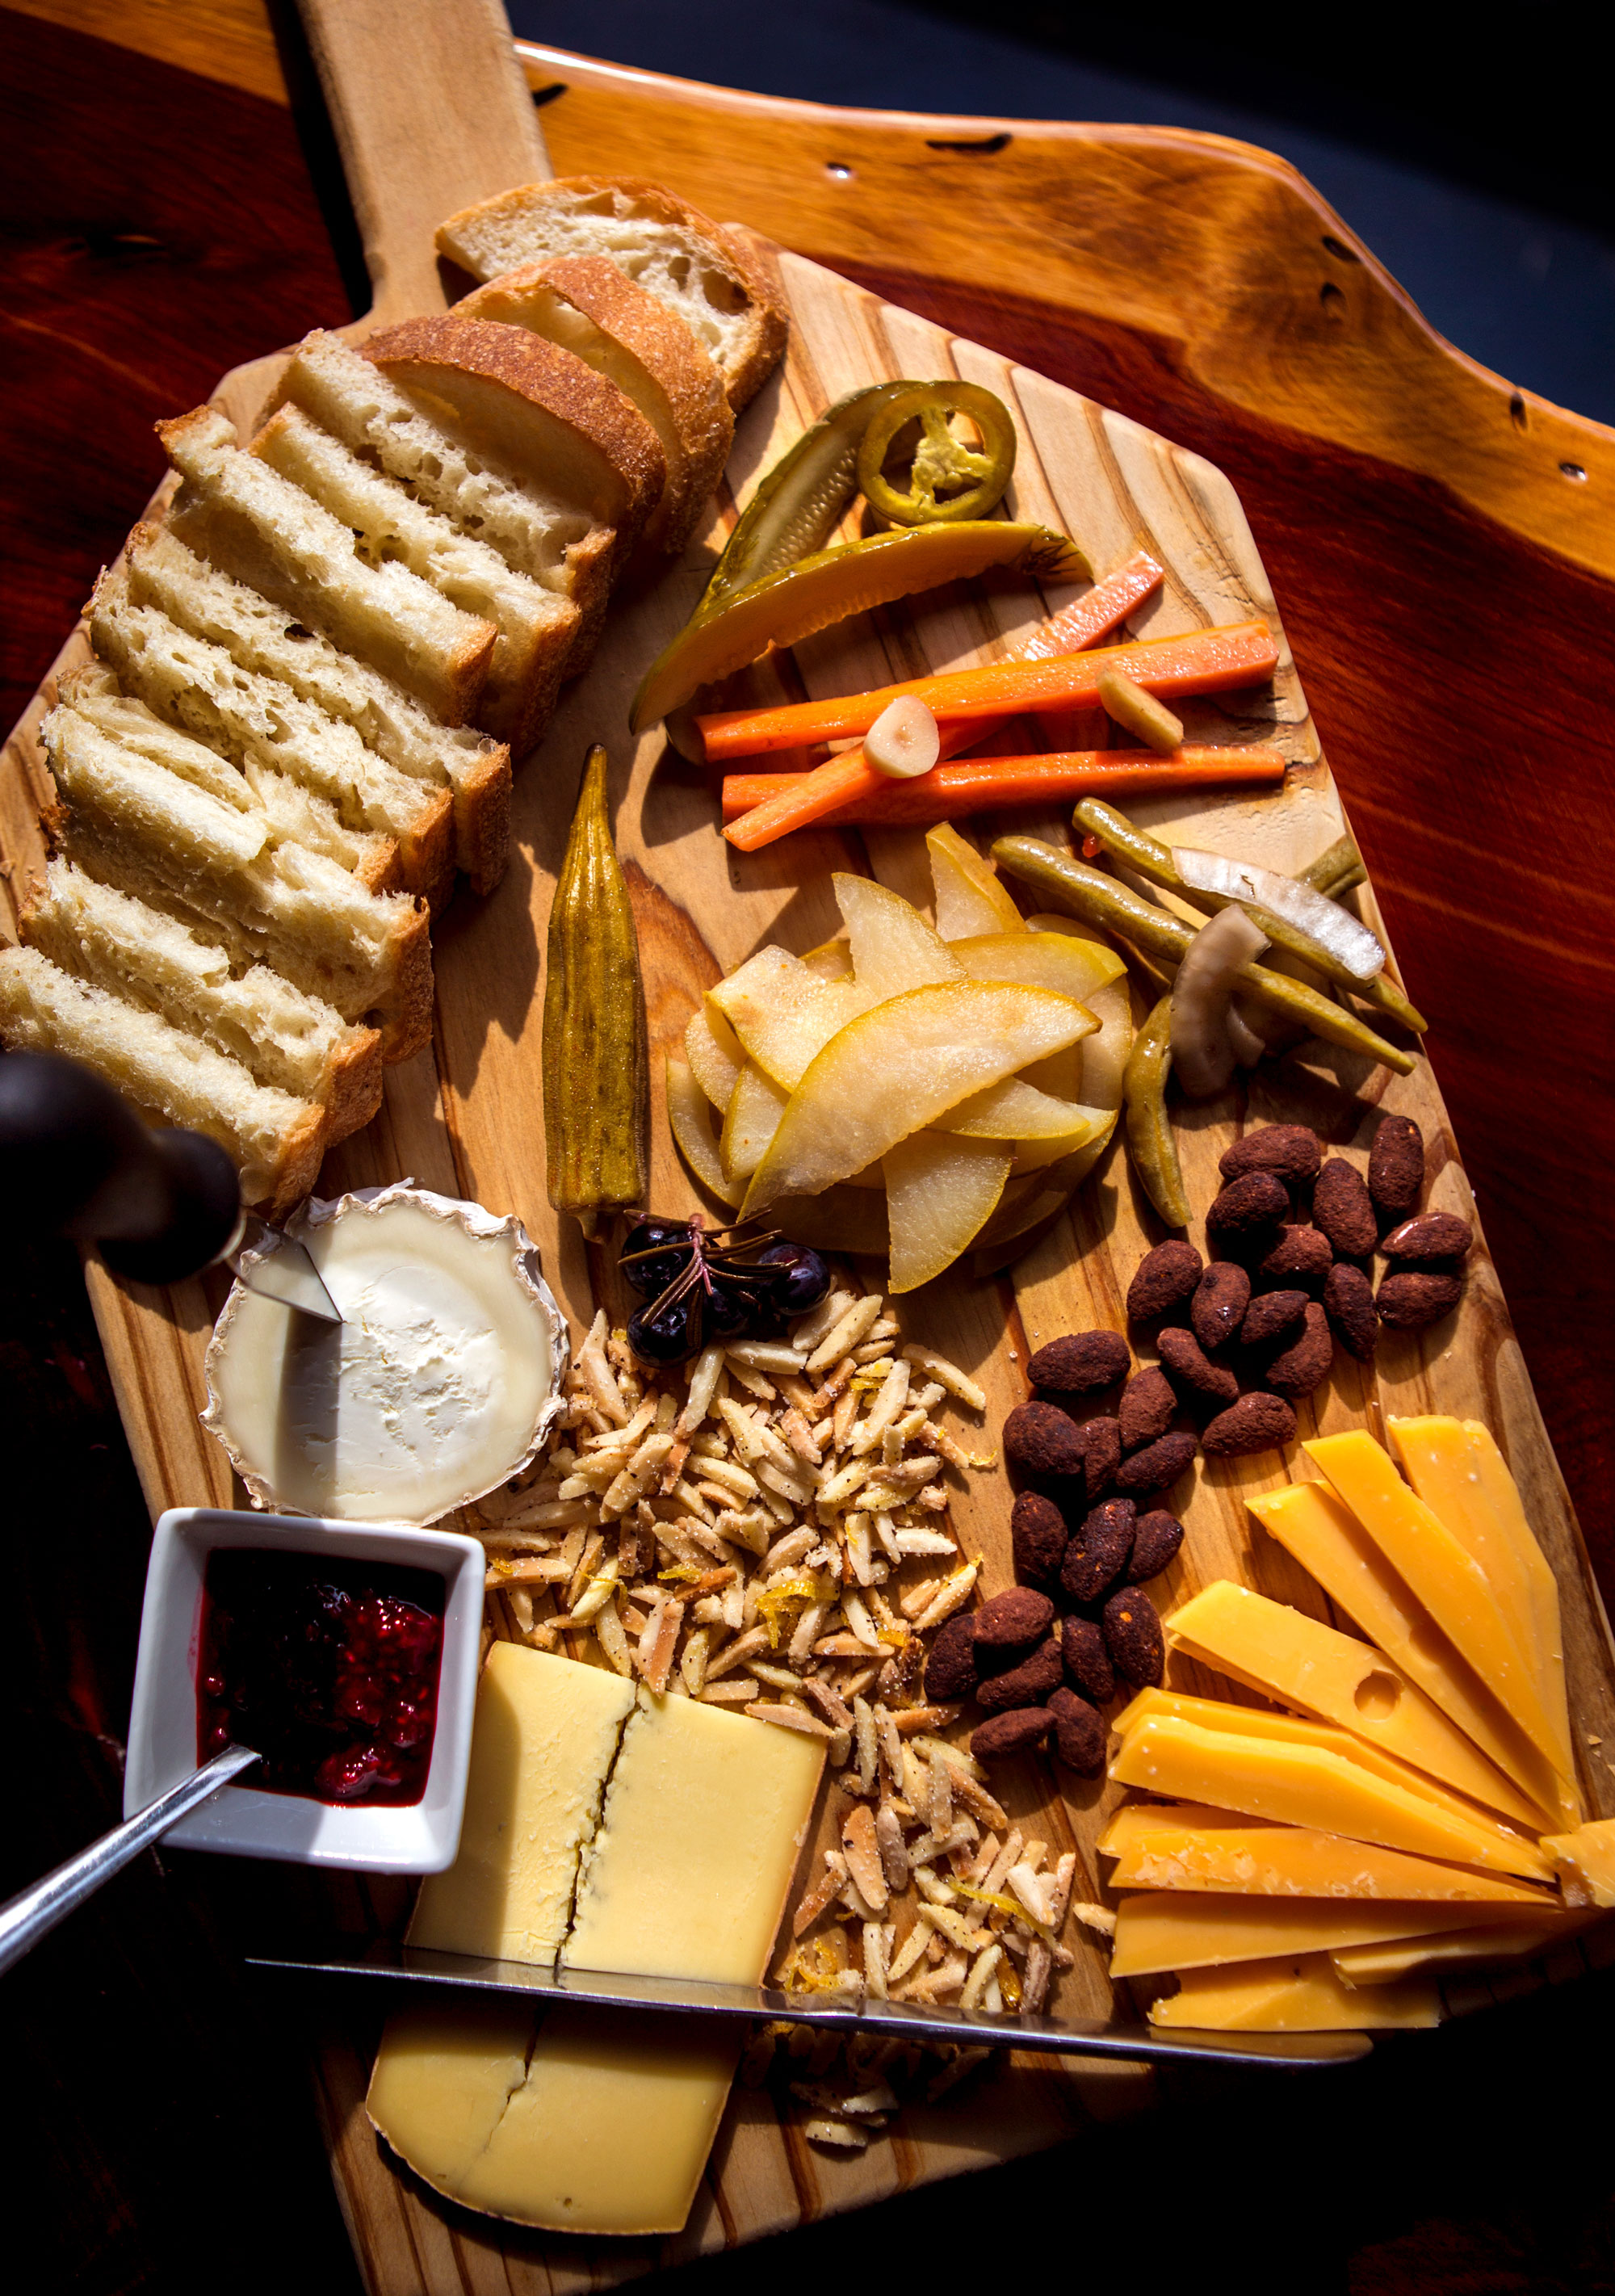 A cheese board from Ten:One.